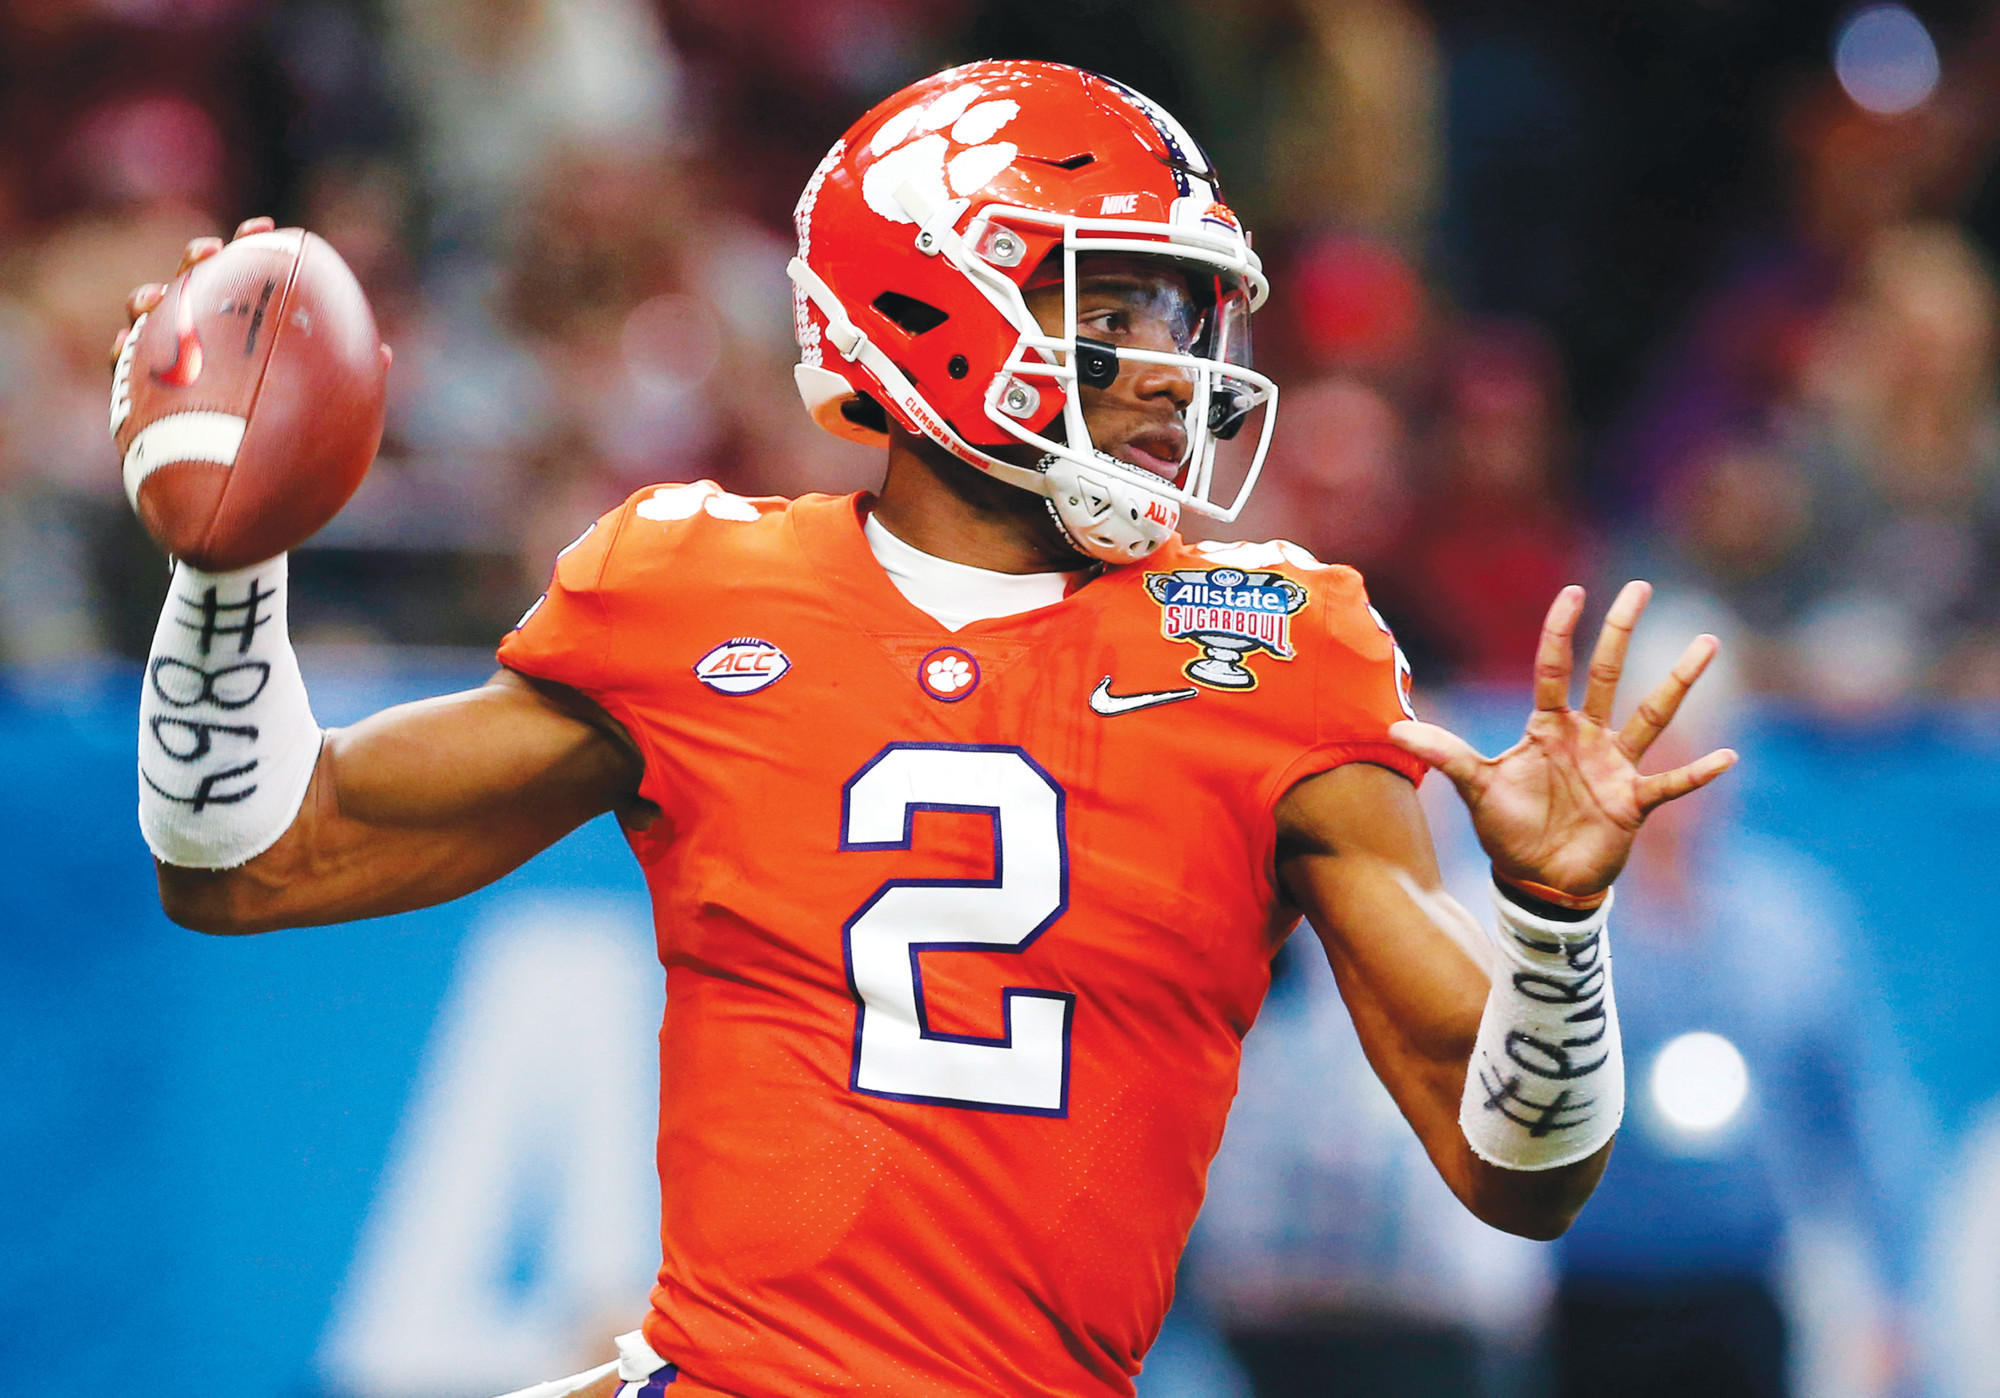 Clemson QB Kelly Bryant (2) will be back for the Tigers this season after leading them to the College Football Playoff last year in his first season as a starter. Clemson head coach Dabo Swinney is not concerned about his quarterback spot, even though the once-loaded depth at the position has been cut in half with transfers.